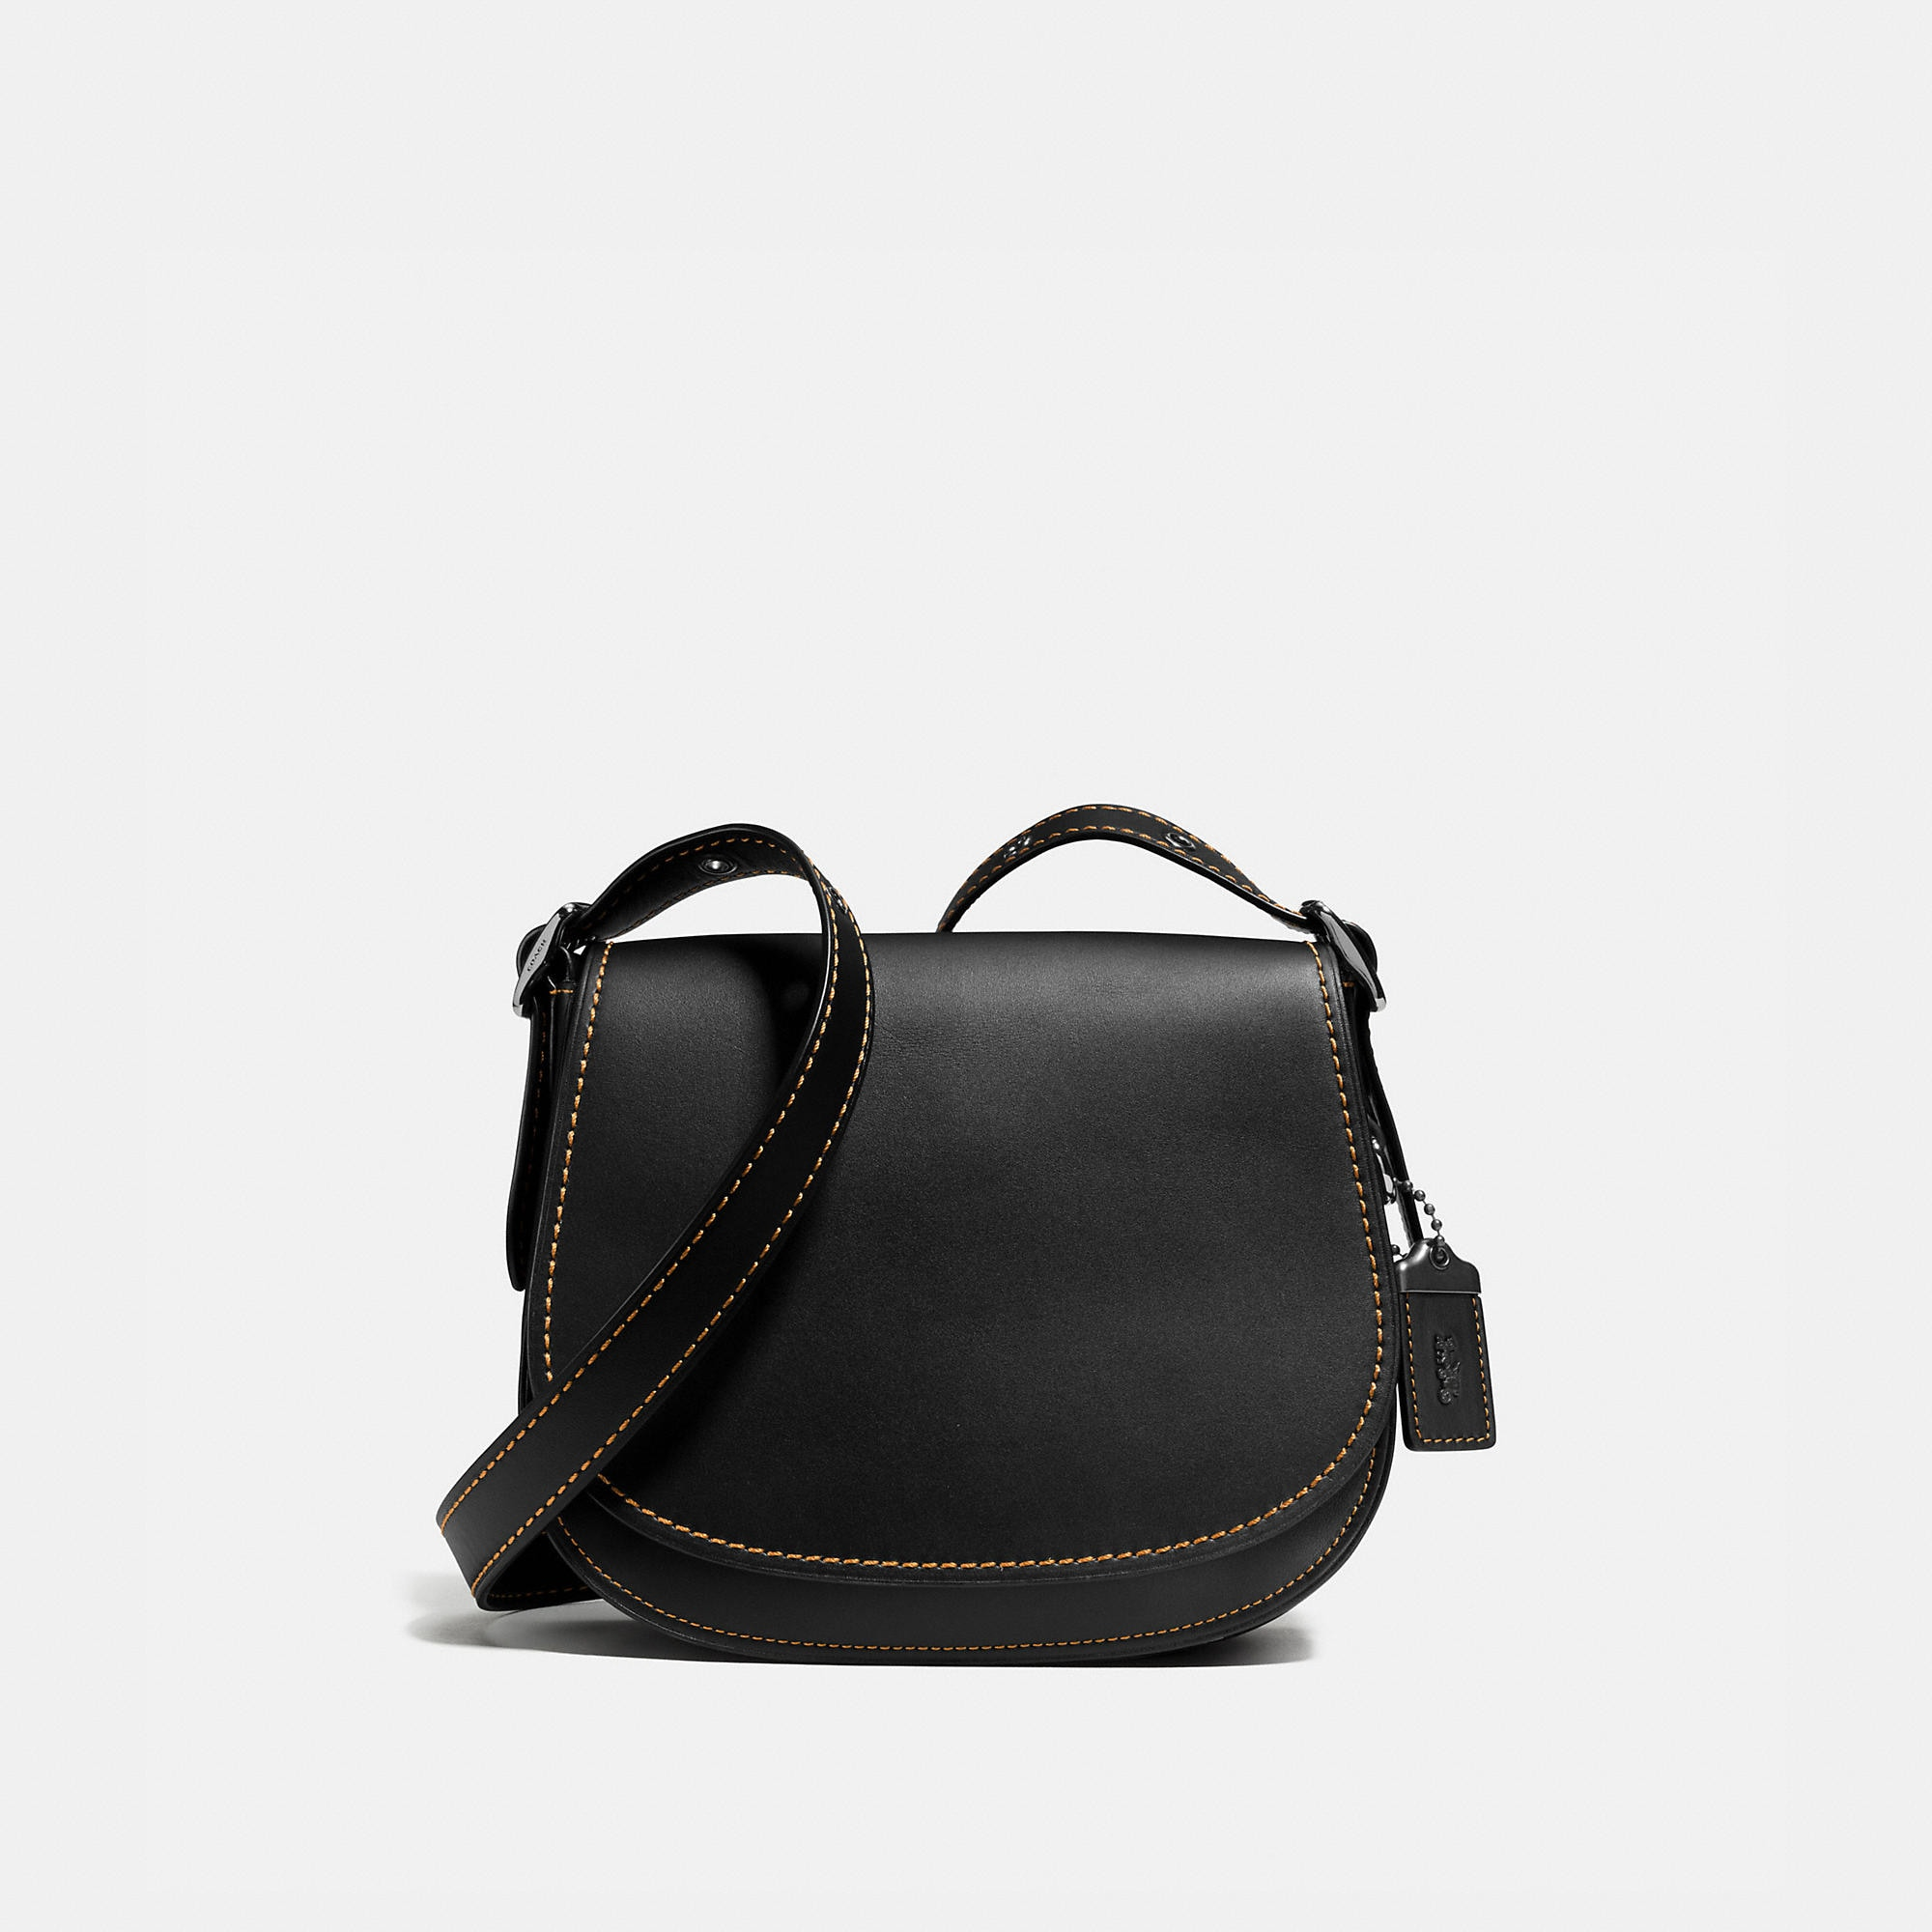 Coach Saddle Bag 23 In Glovetanned Leather